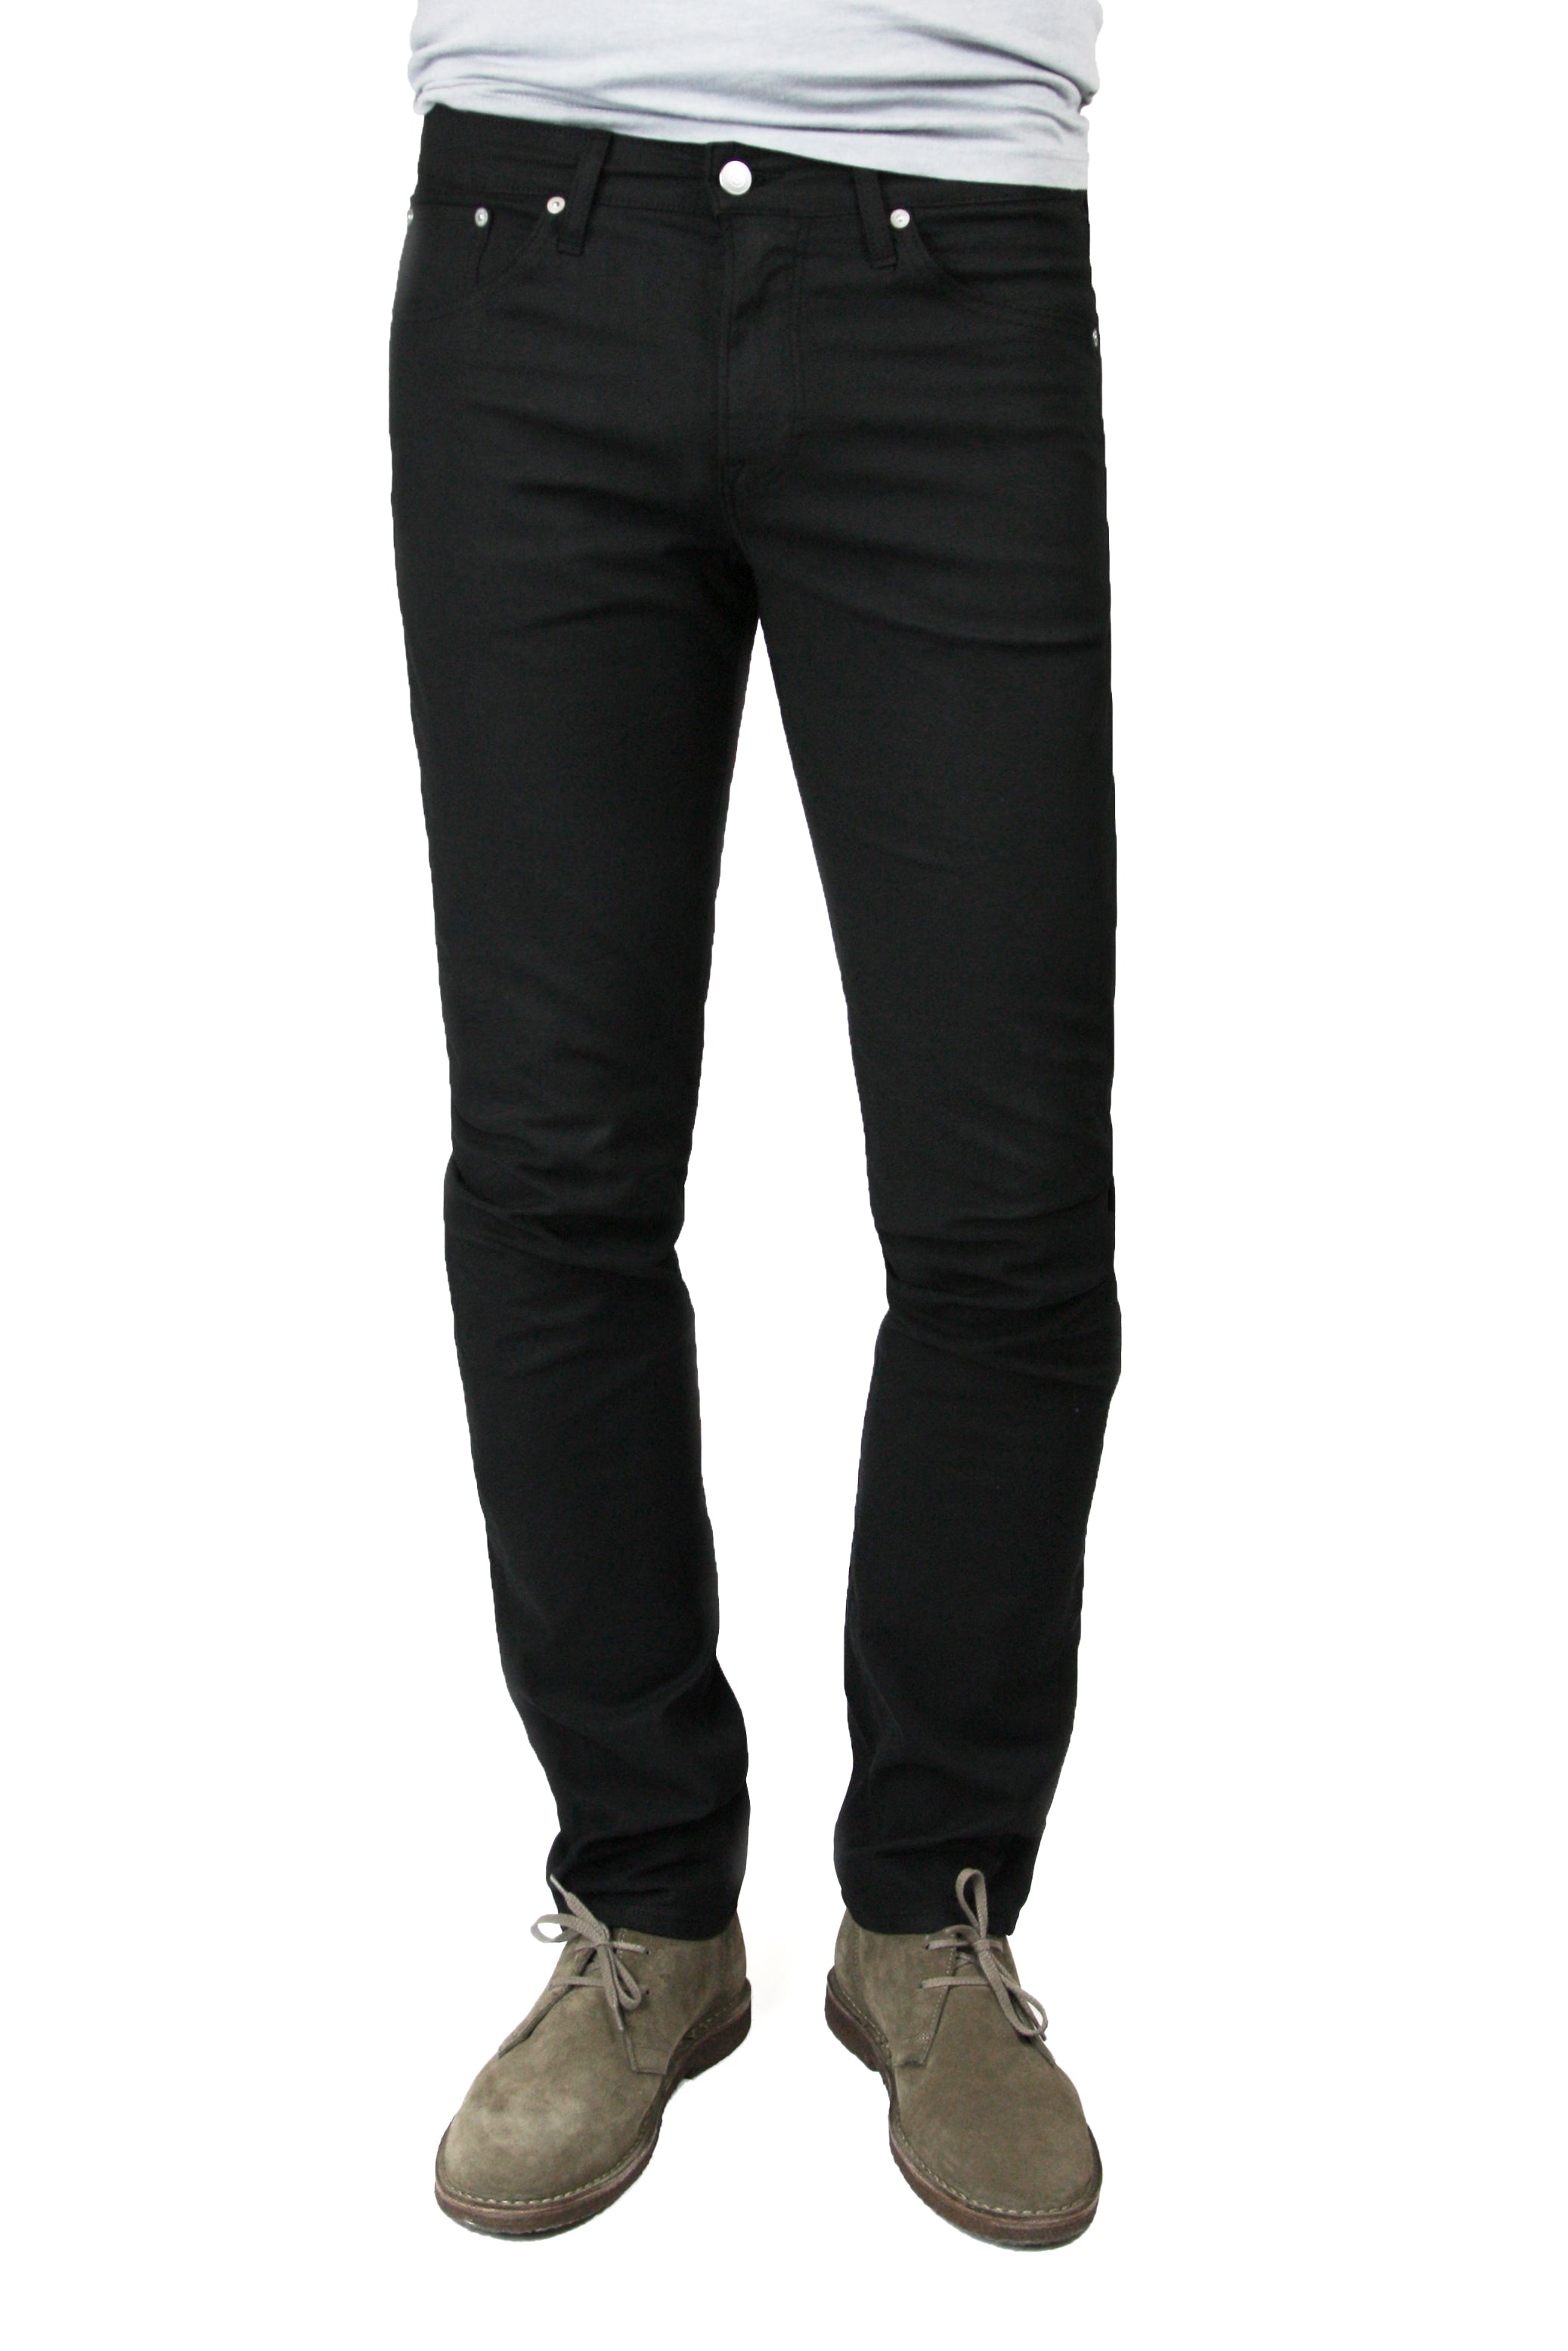 S.M.N Studio's Hunter in Black Men's Twill Pants - Slim comfort stretch twill pants dyed in black